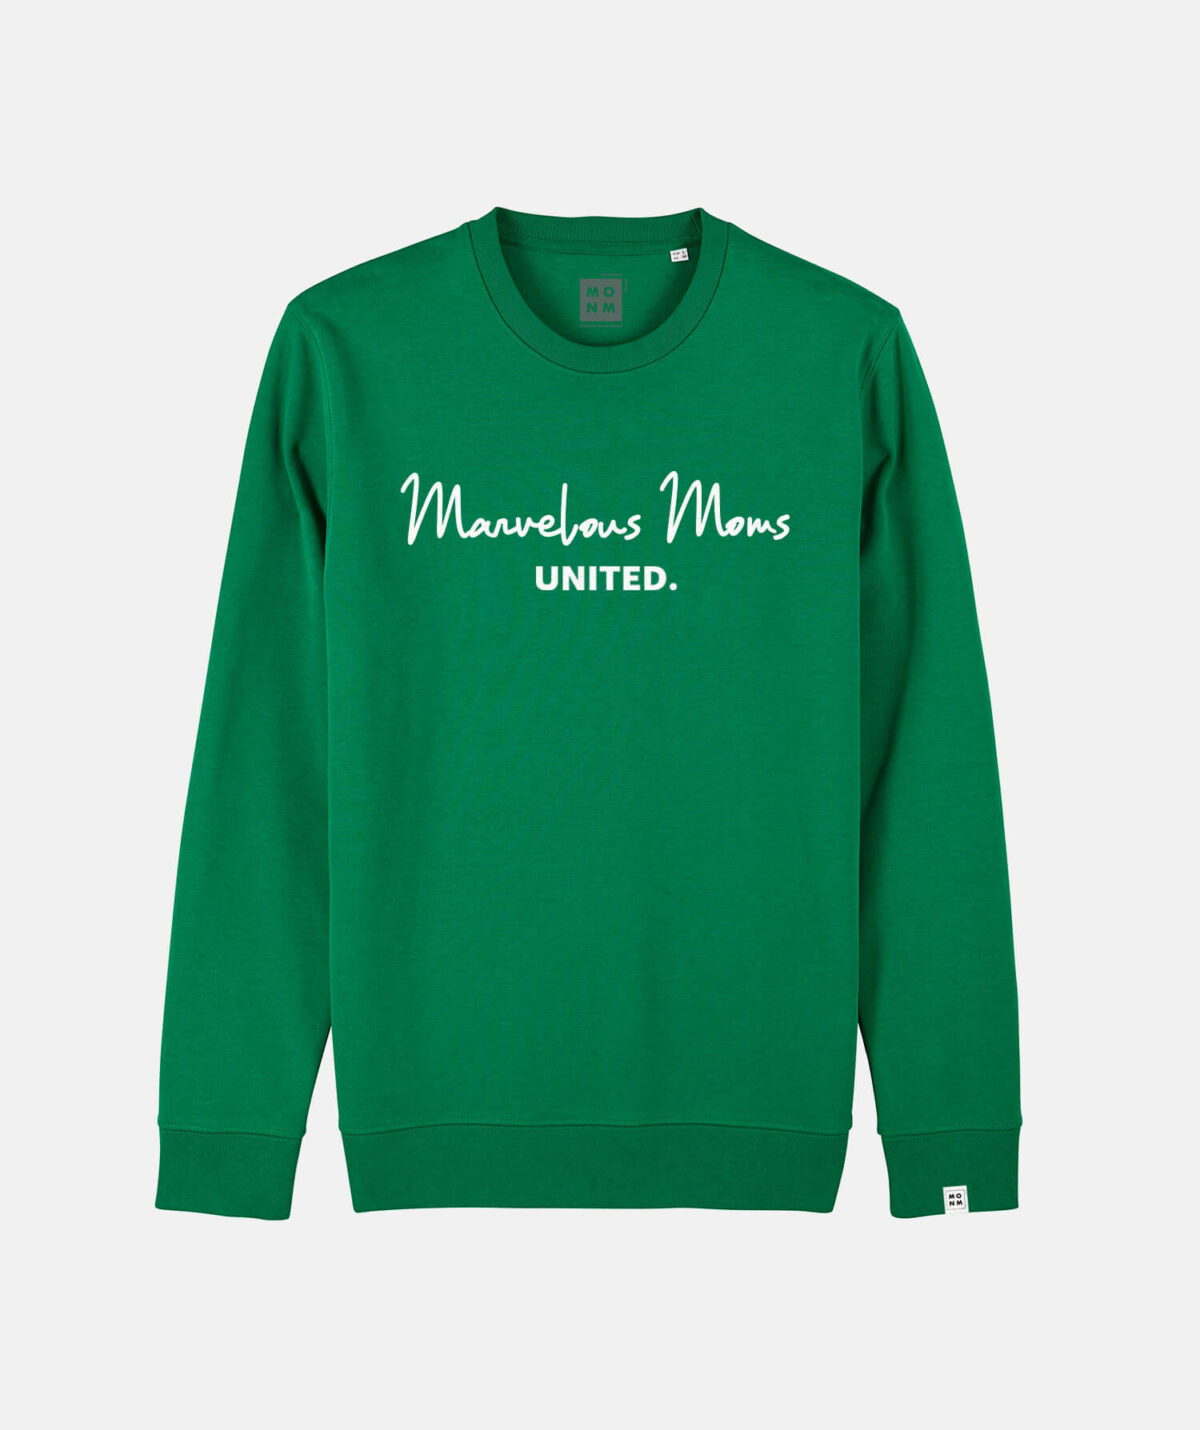 Marvelous moms united sweater voor kinderen van Mangos on Monday